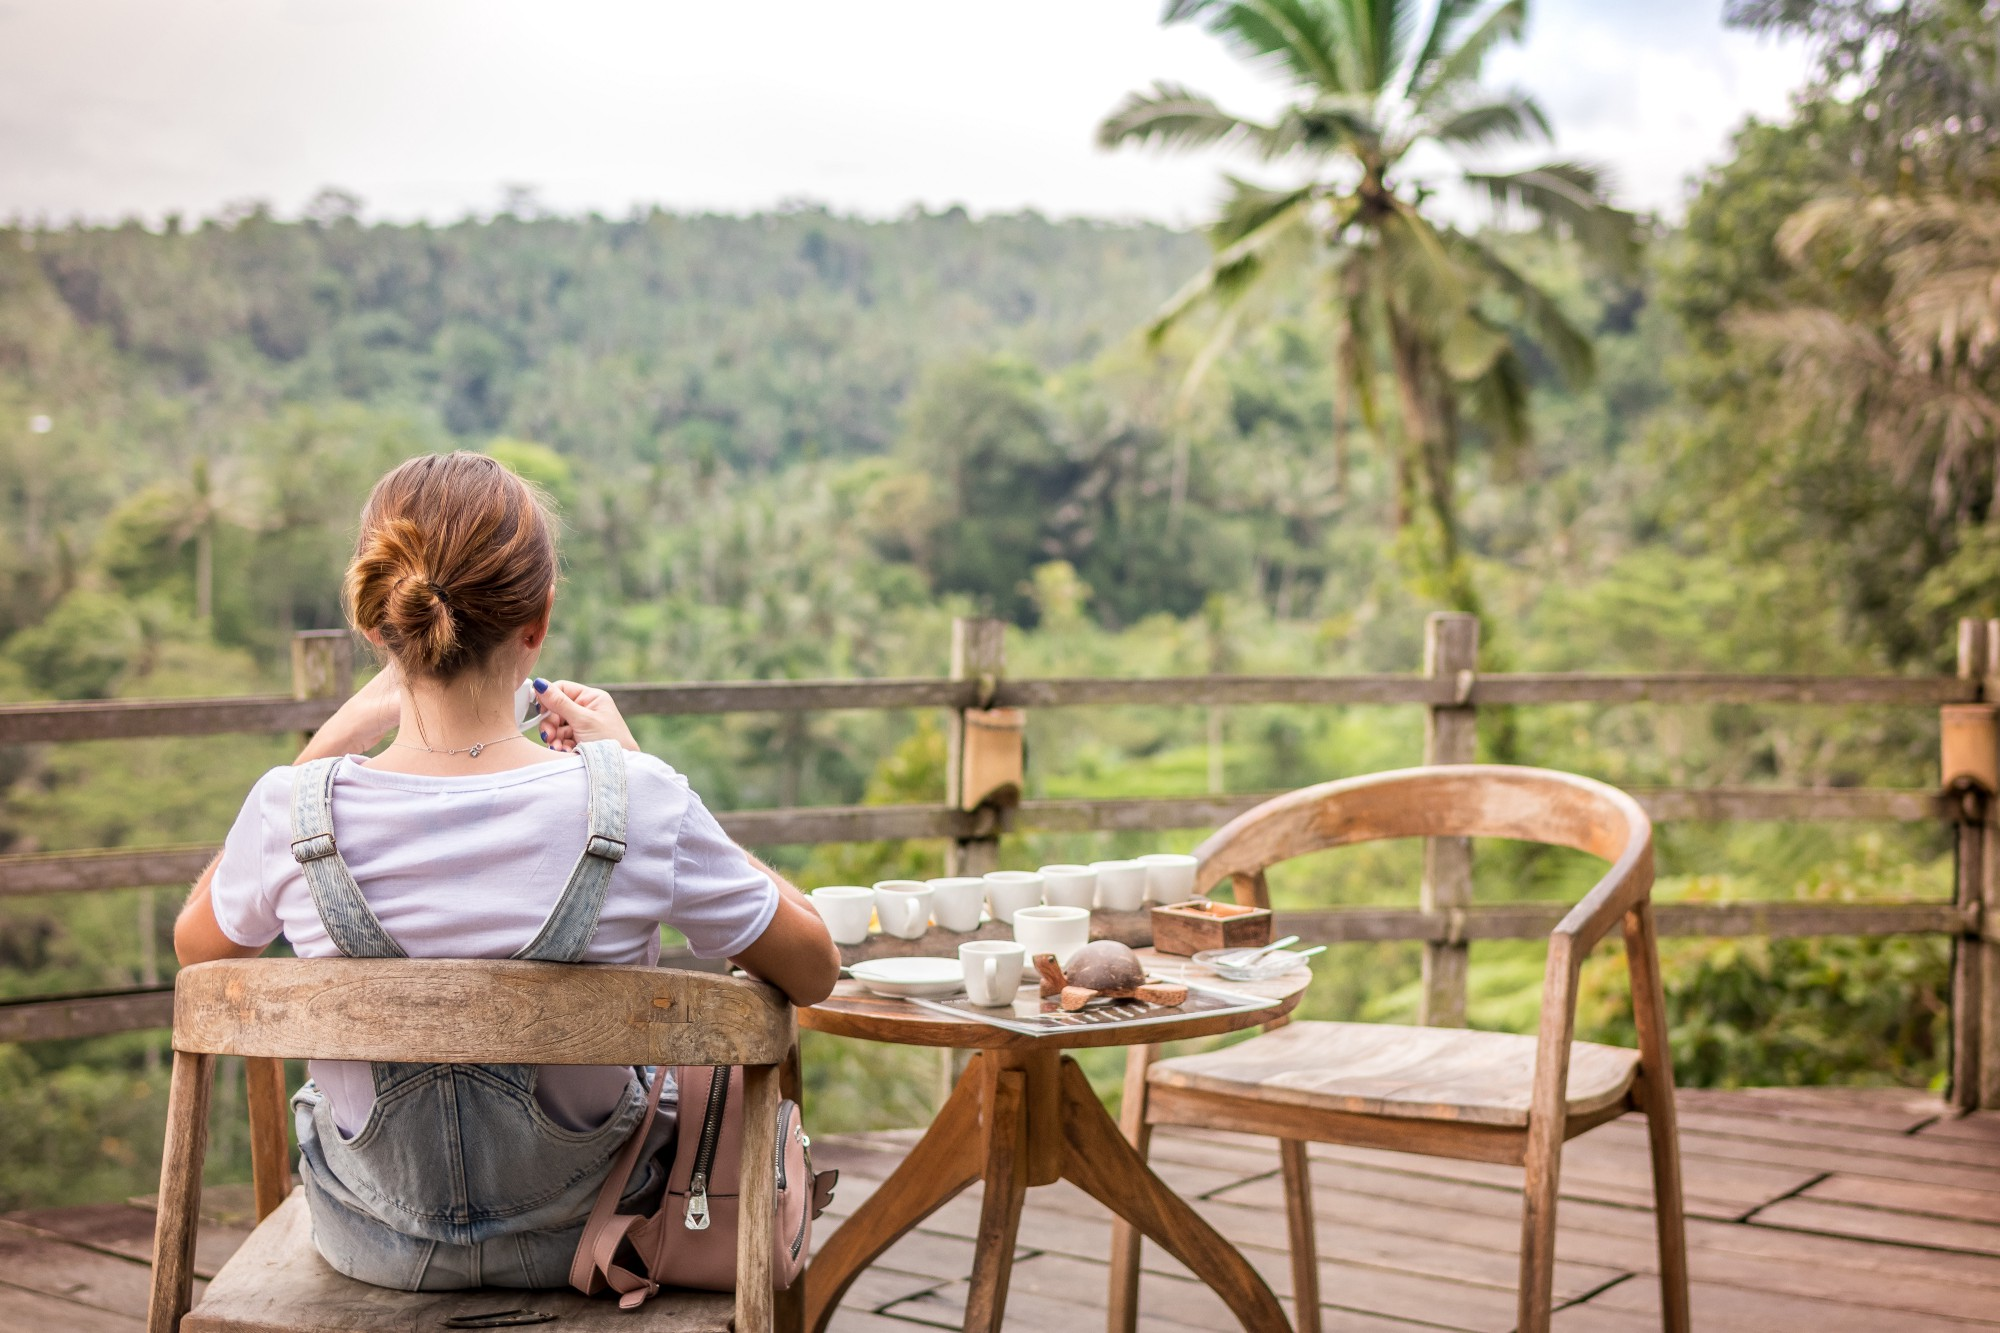 A woman sitting on a chair, next to a table of condiments, on a balcony, overlooking a jungle.